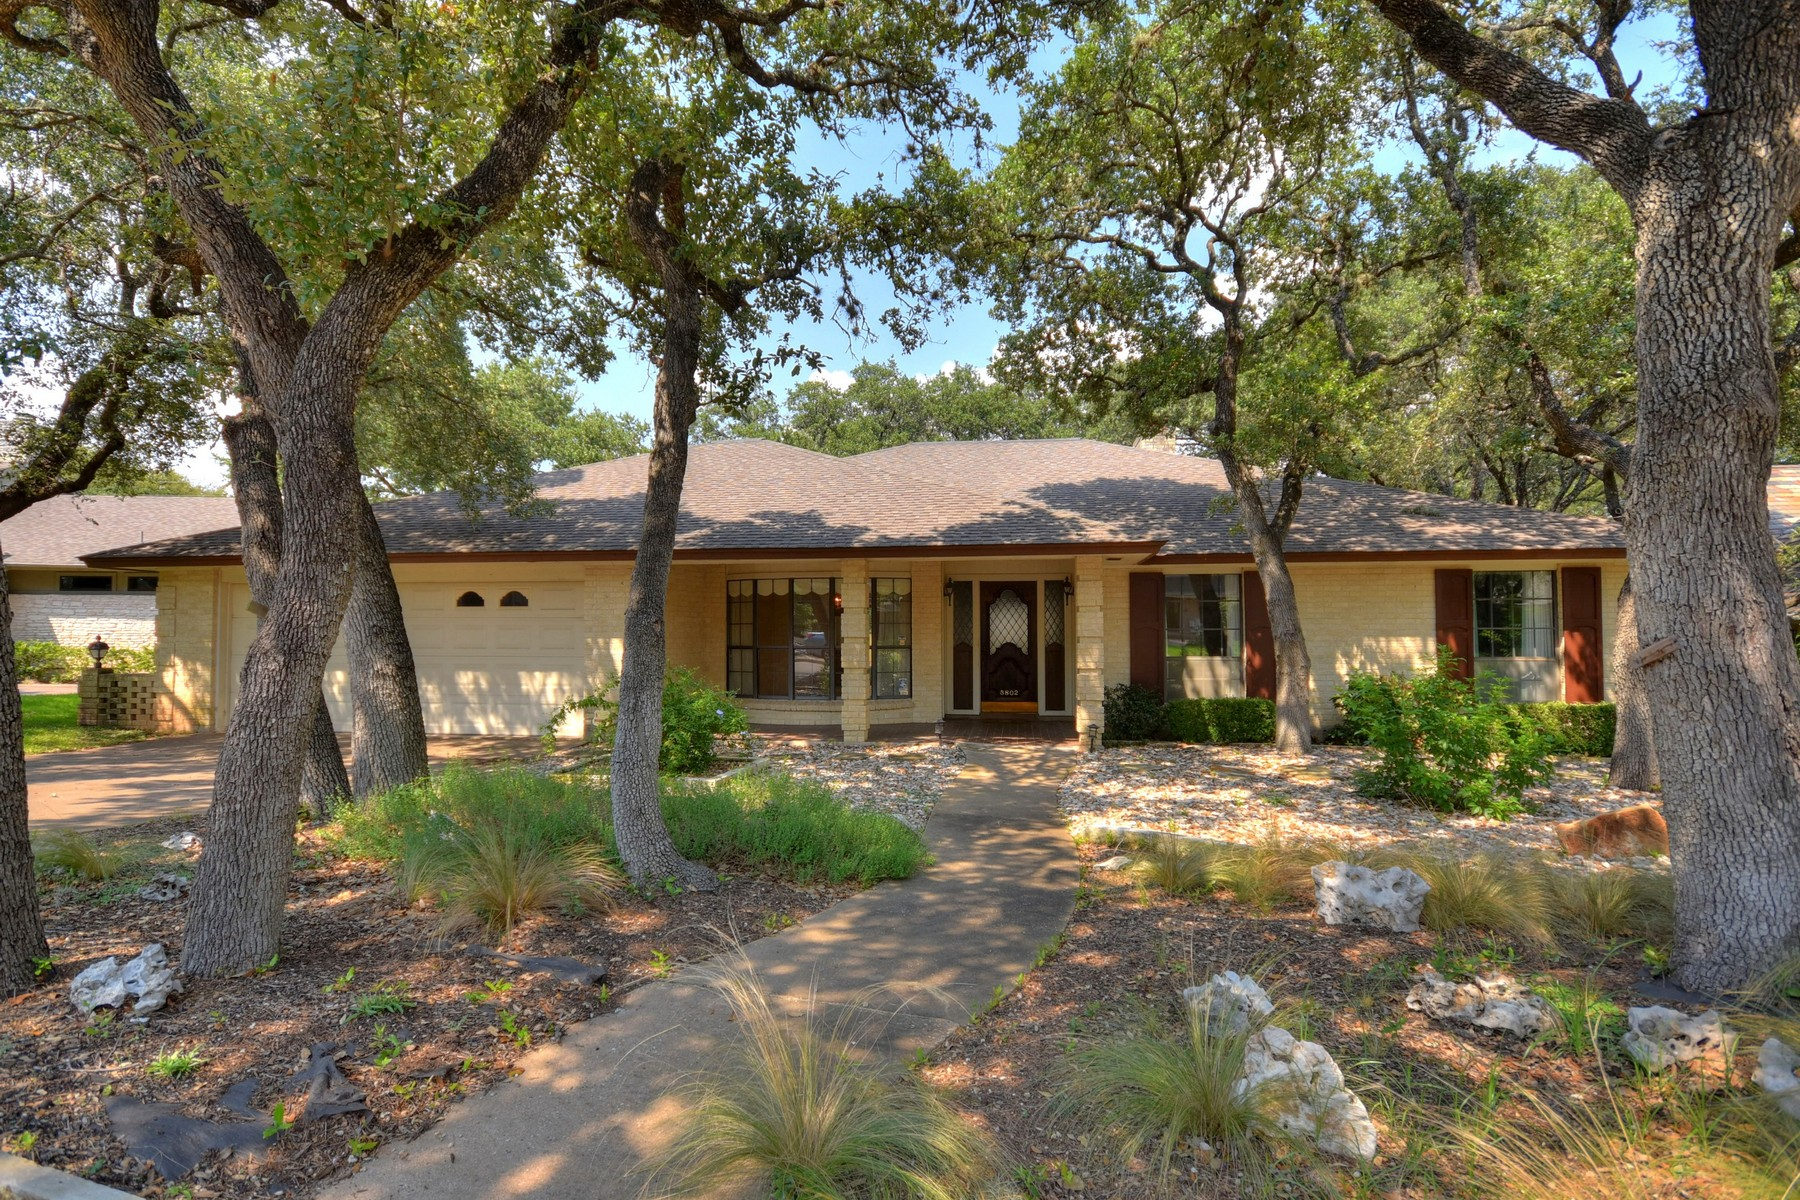 Single Family Home for Sale at Rare Green Trail Opportunity 3802 Green Trail North Austin, Texas 78731 United States